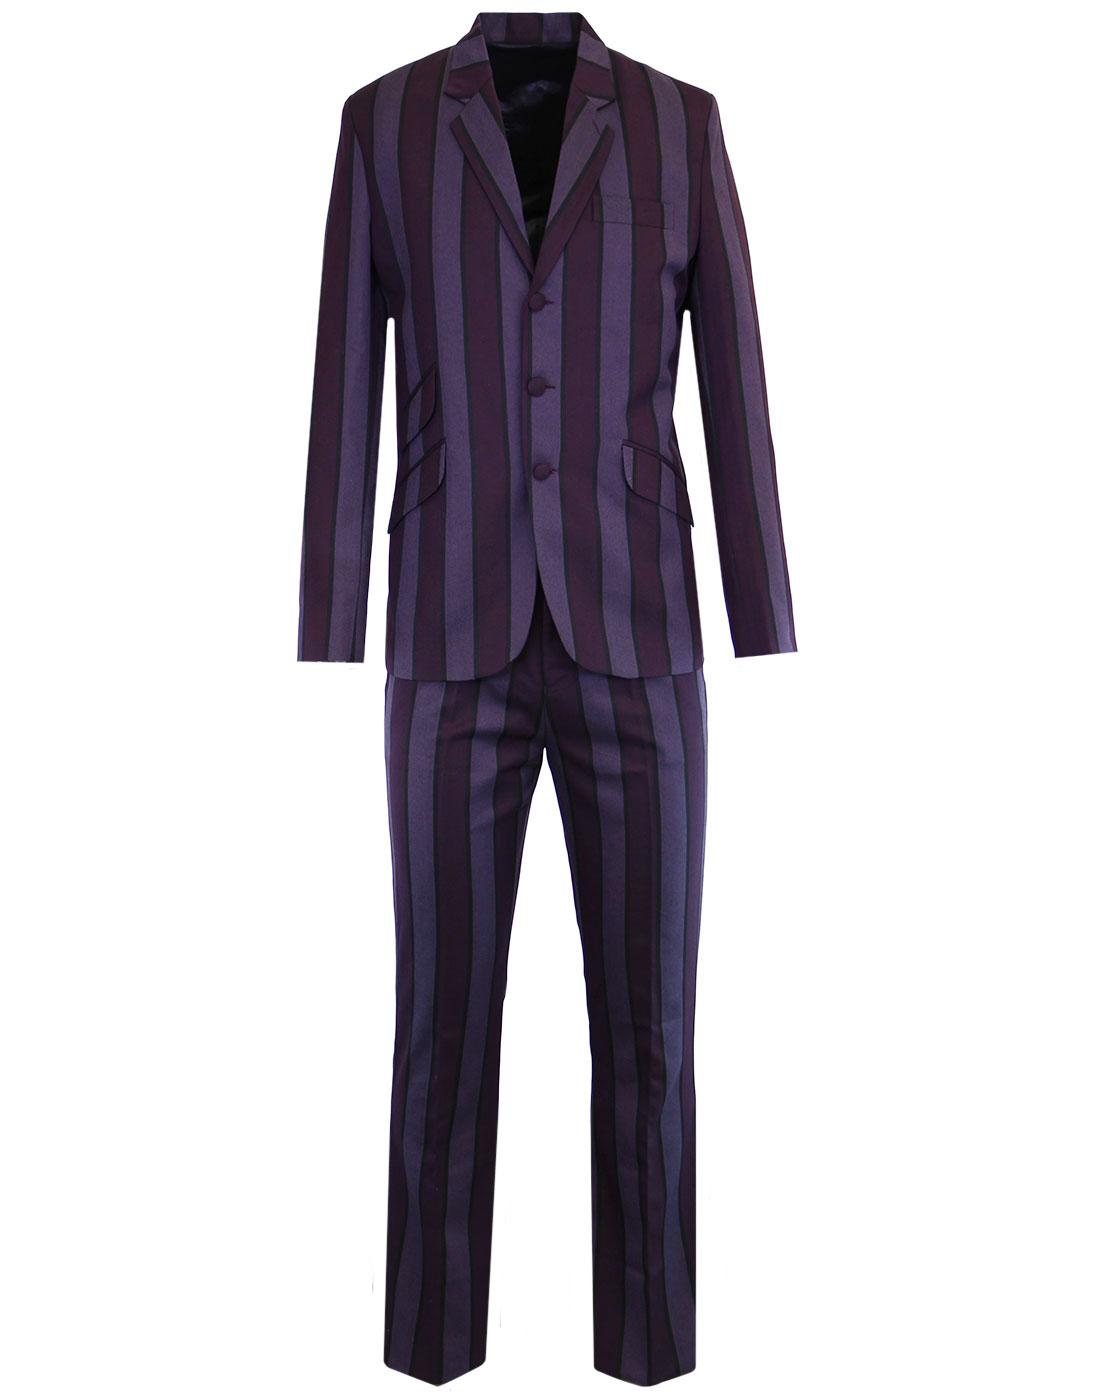 MADCAP ENGLAND Offbeat Mod 60s Slim Suit in Purple